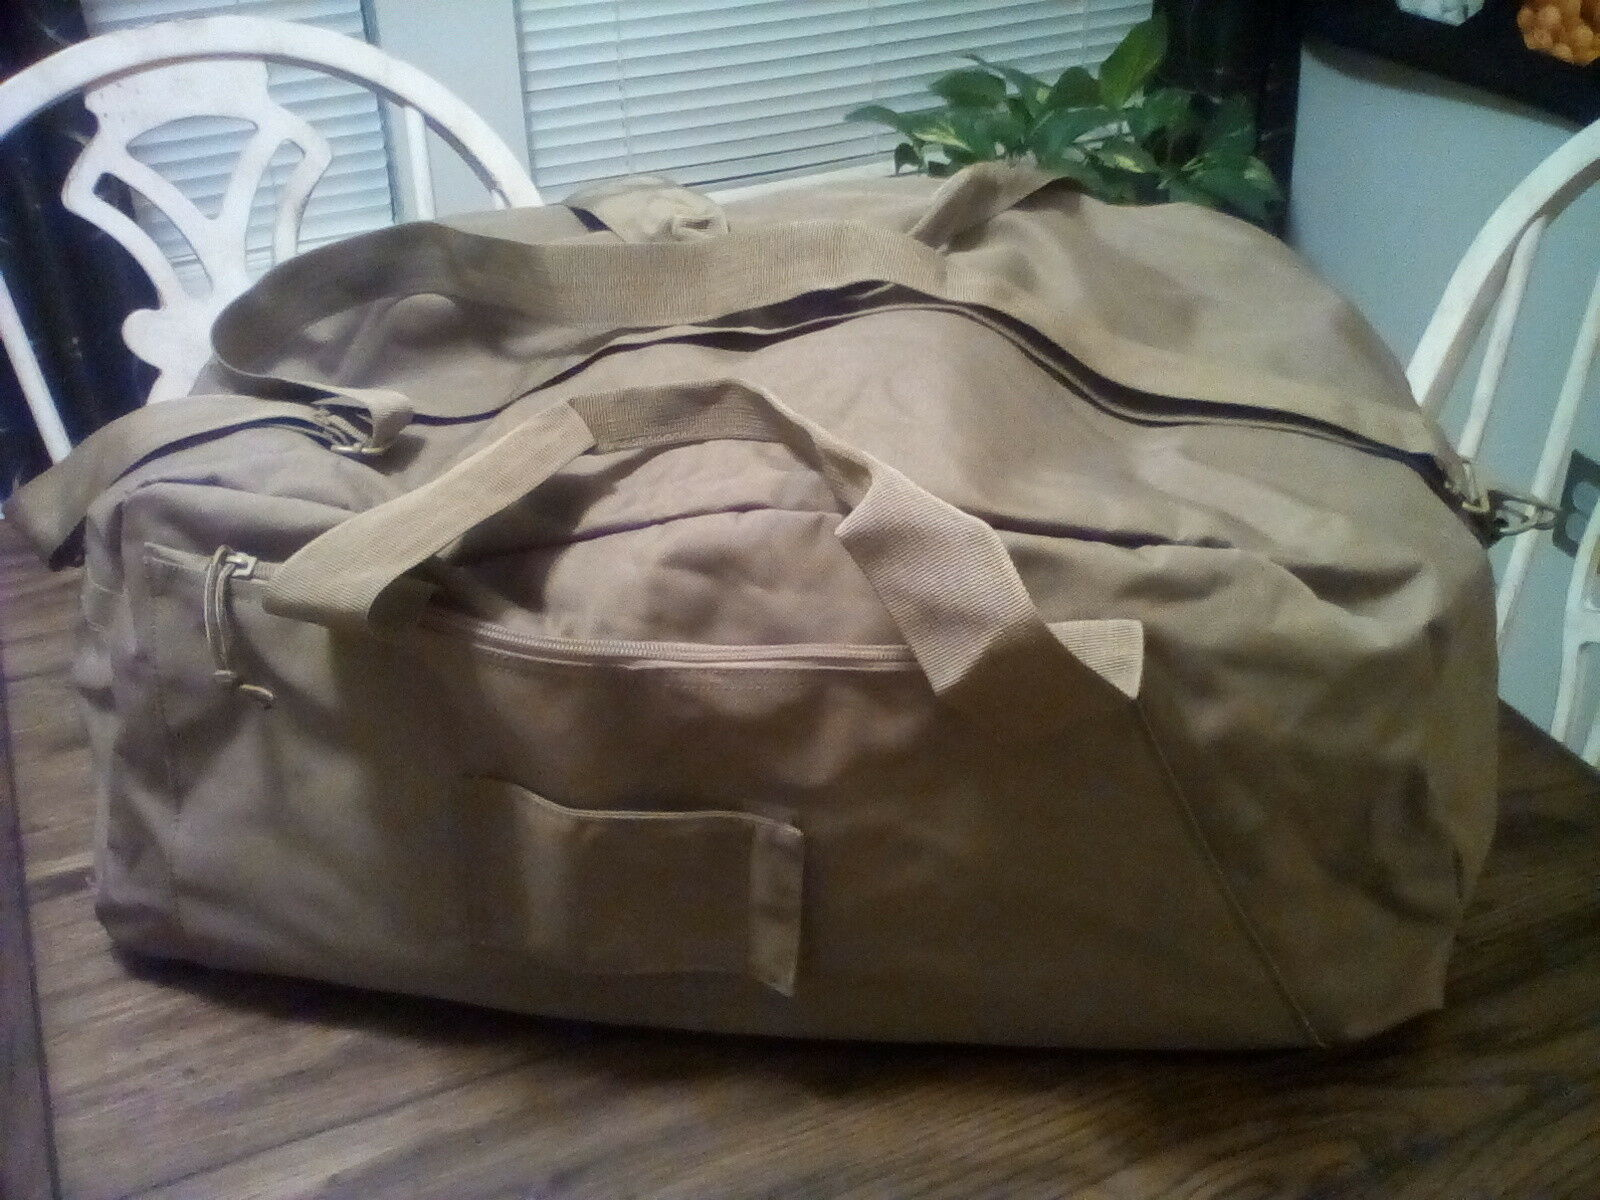 5ive Star Gear Large Tactical Zipper Duffel Bag Coyote, made of Heavy Canvas